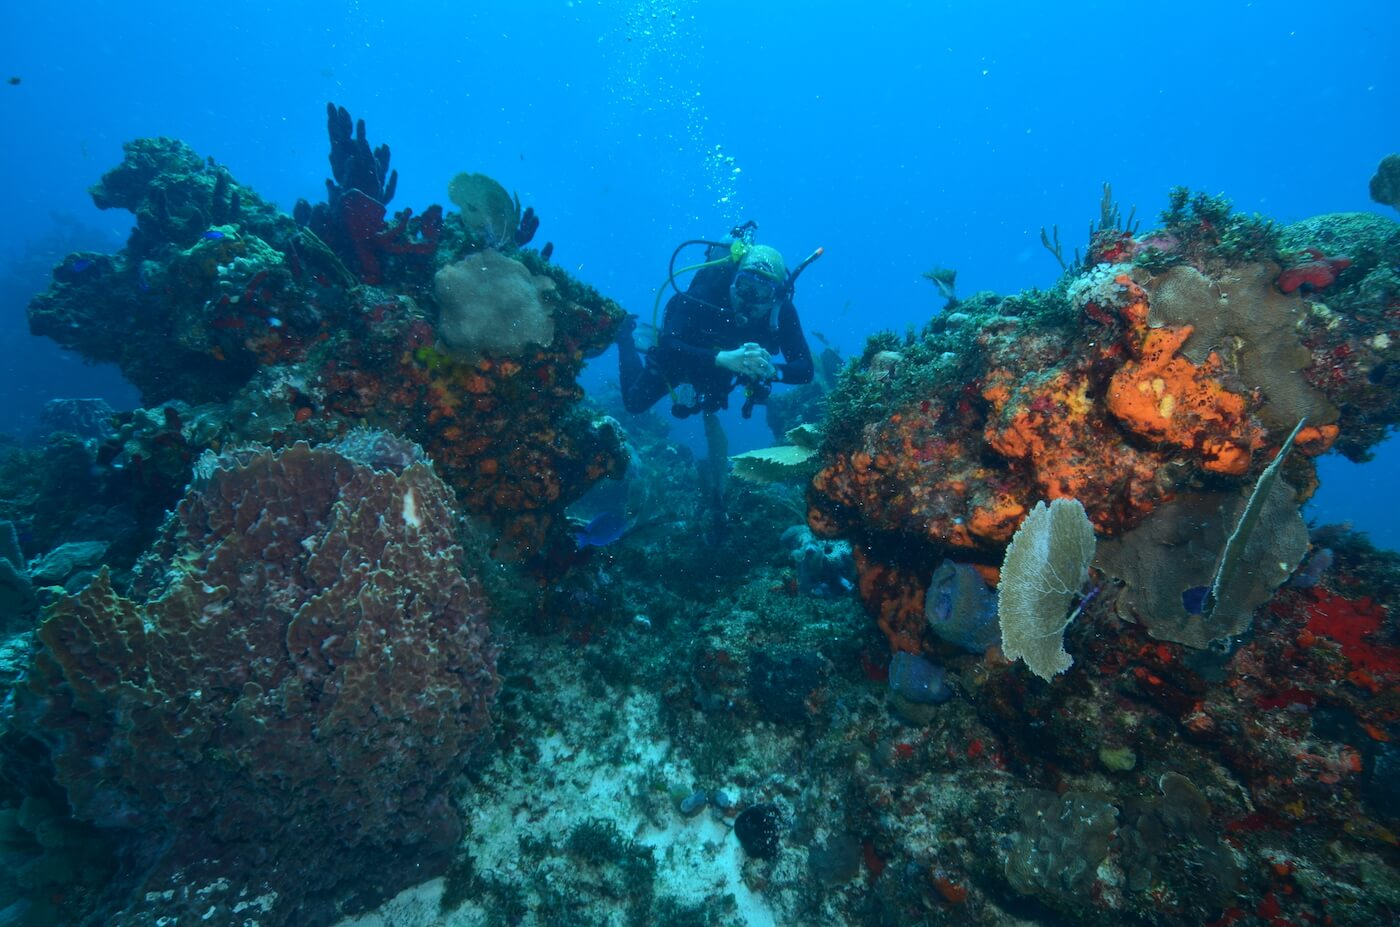 Coral-Reef-Cancun-Dive-Center-Caribbean-Connections-16